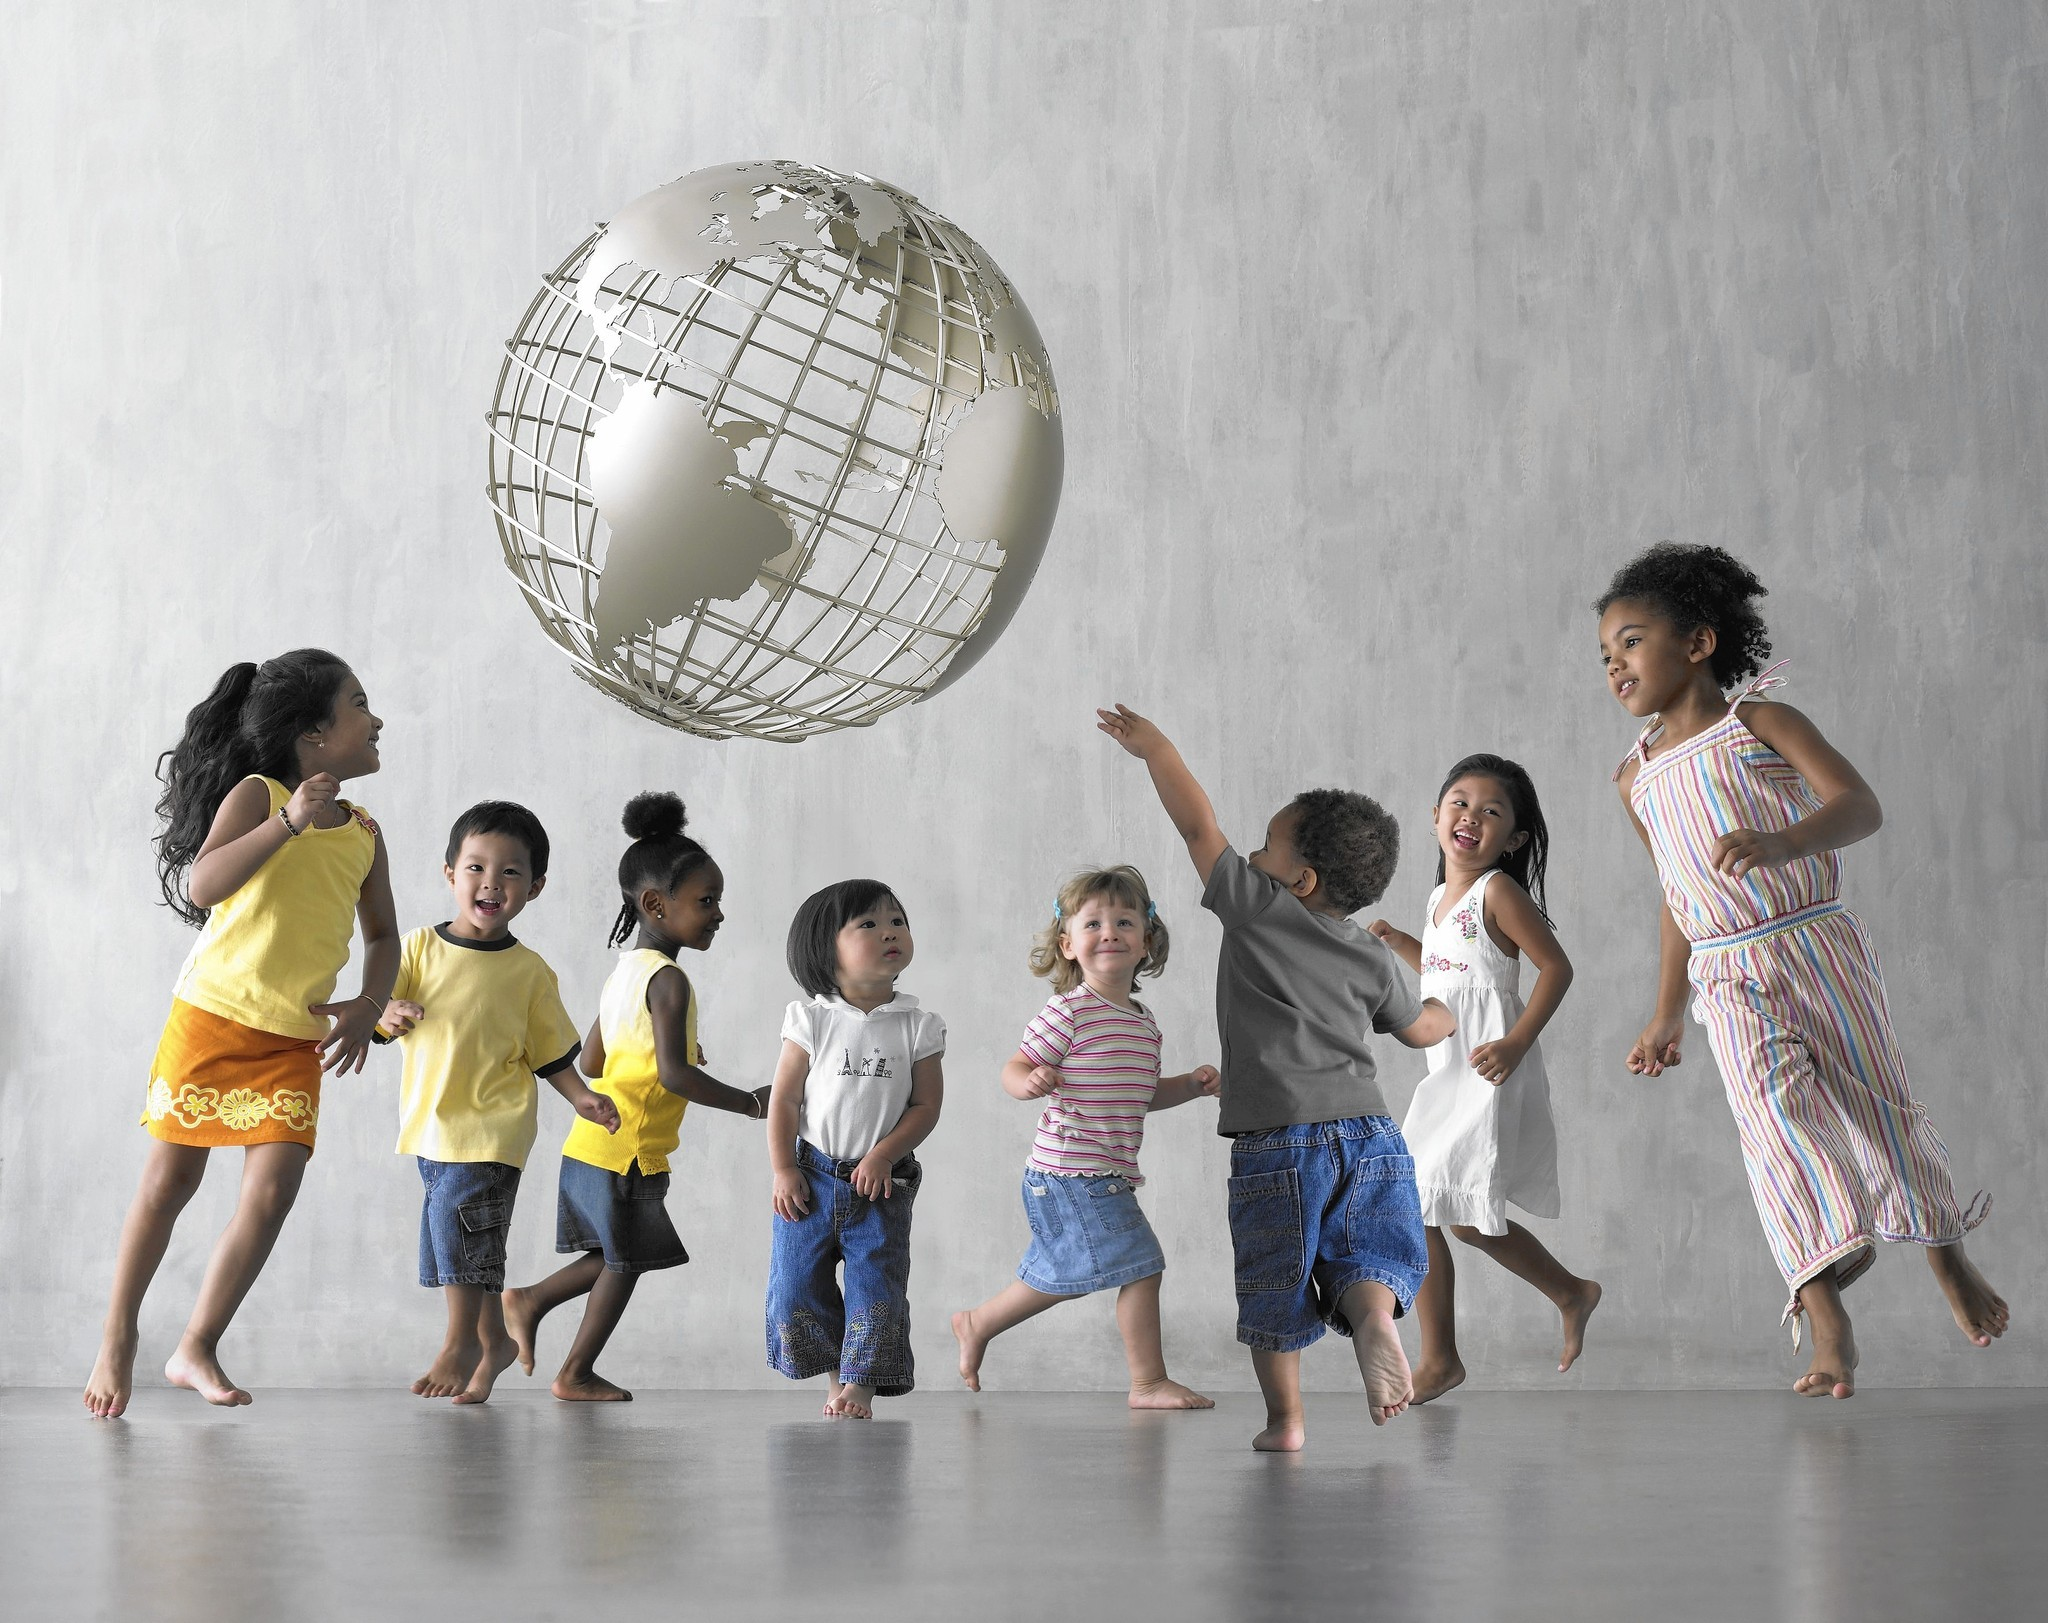 Cultural diversity pays off, for kids of all ages